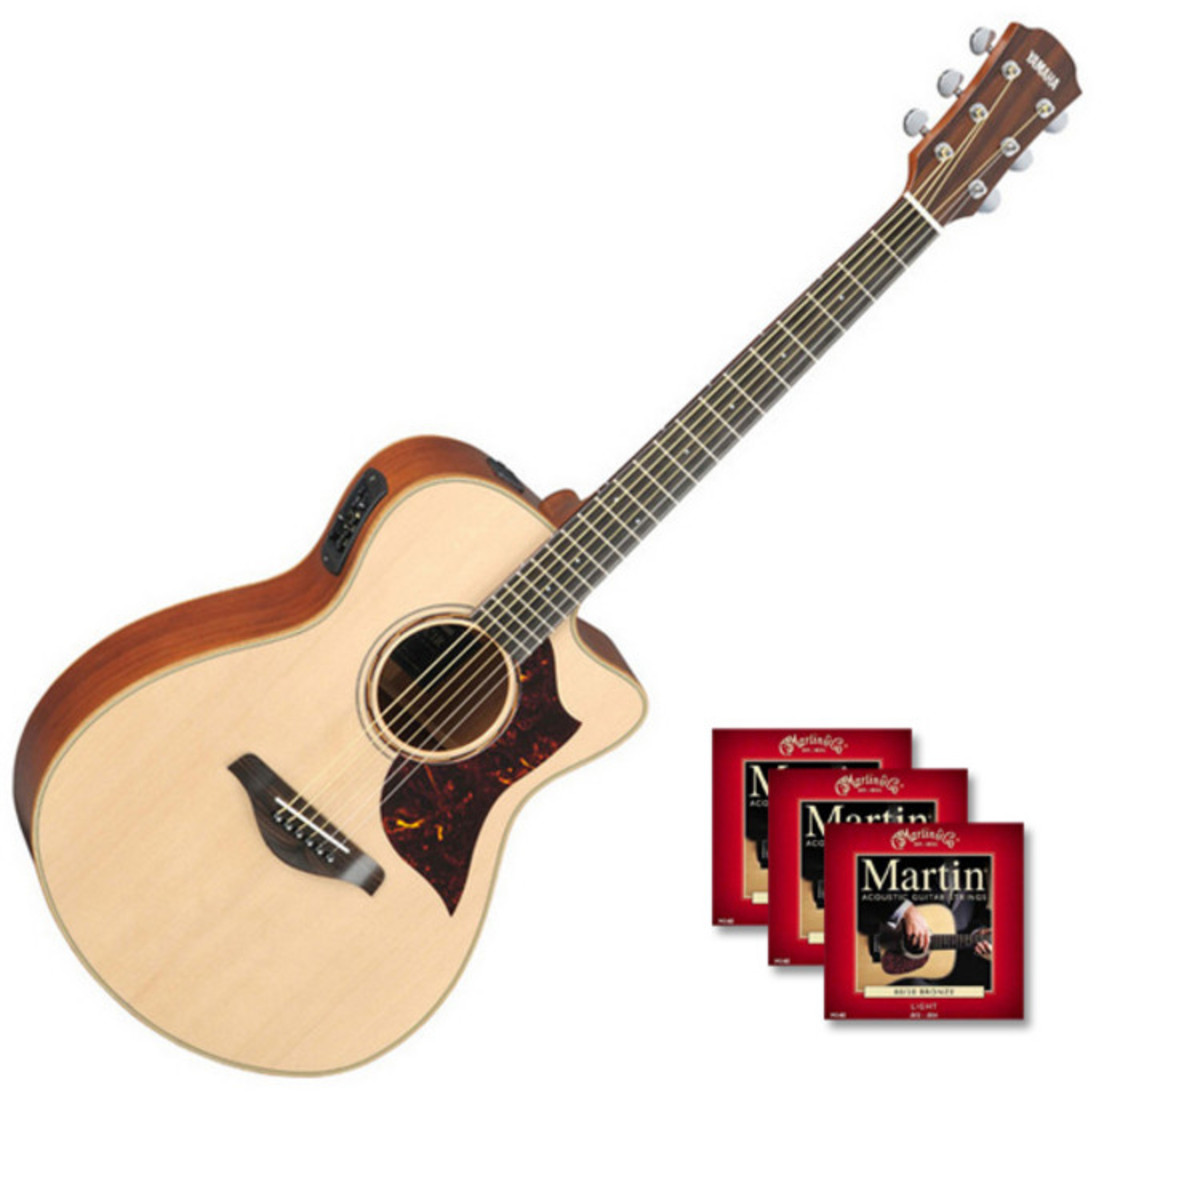 yamaha ac3m guitare electro acoustique naturel avec. Black Bedroom Furniture Sets. Home Design Ideas